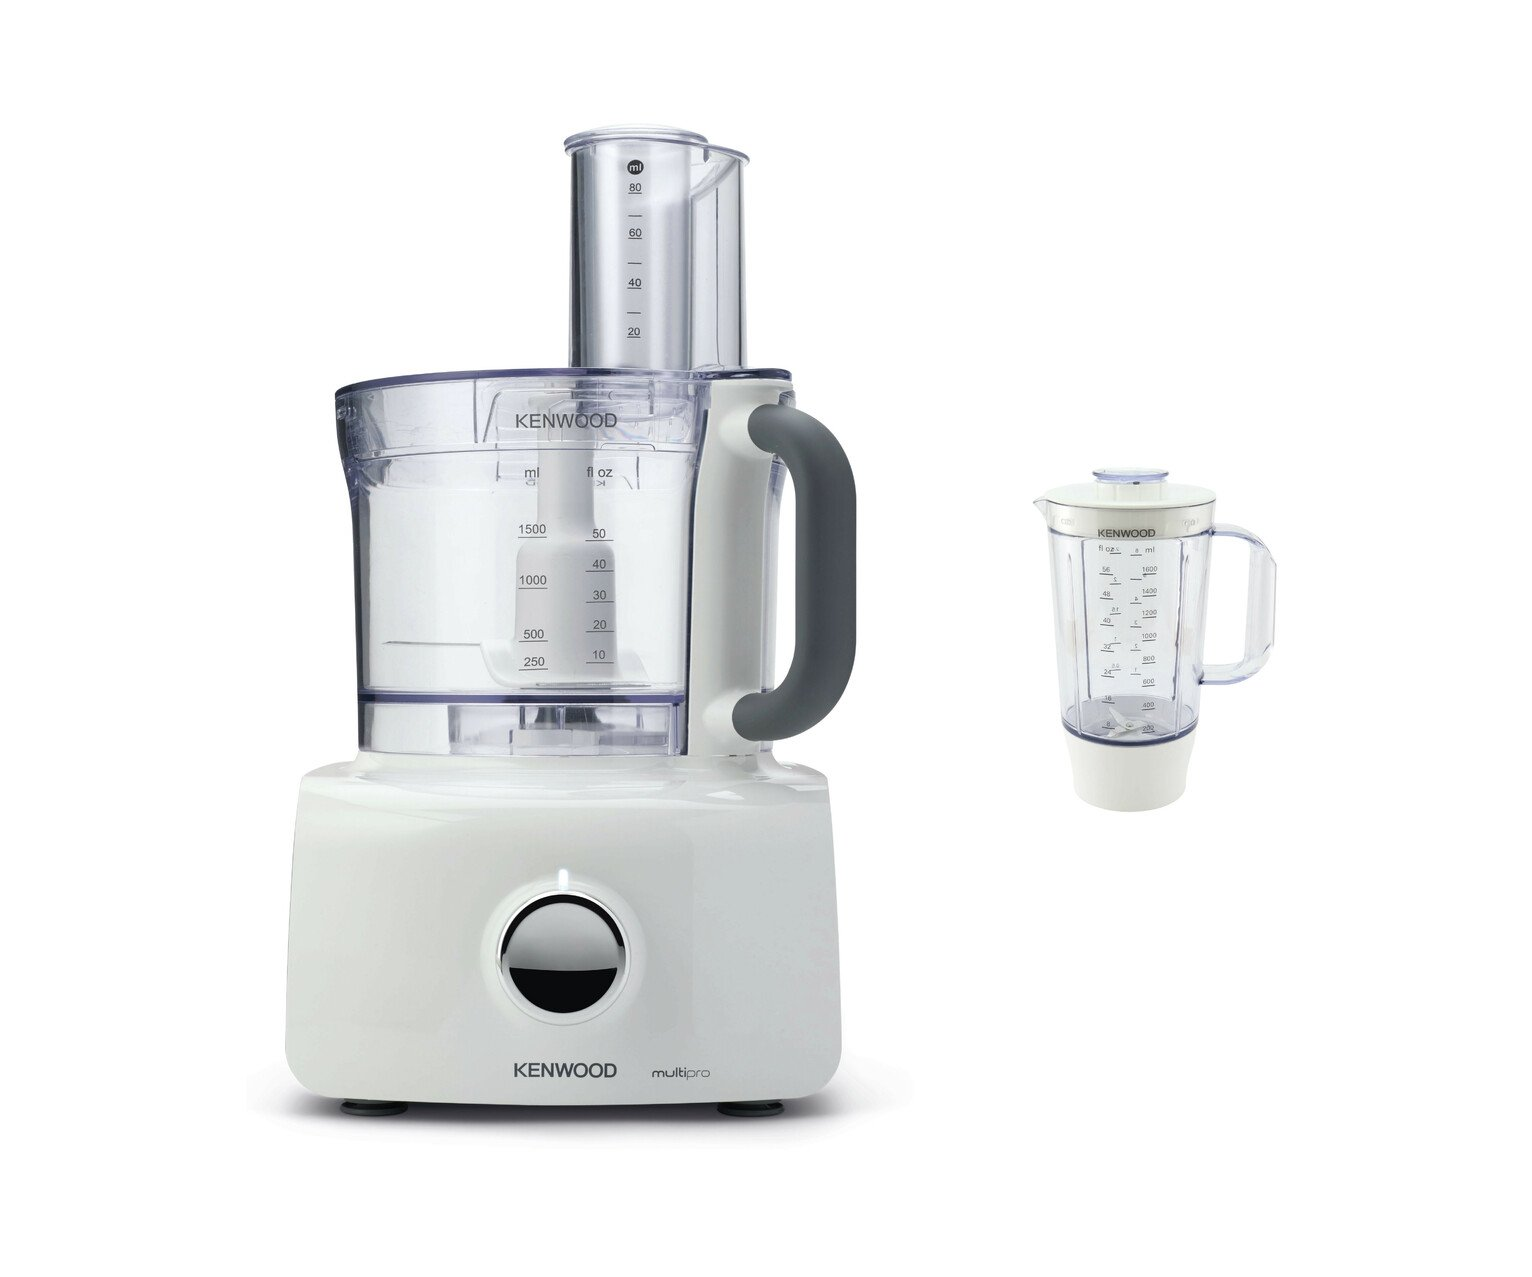 Kenwood MultiPro FDP641WH Food Processor - White